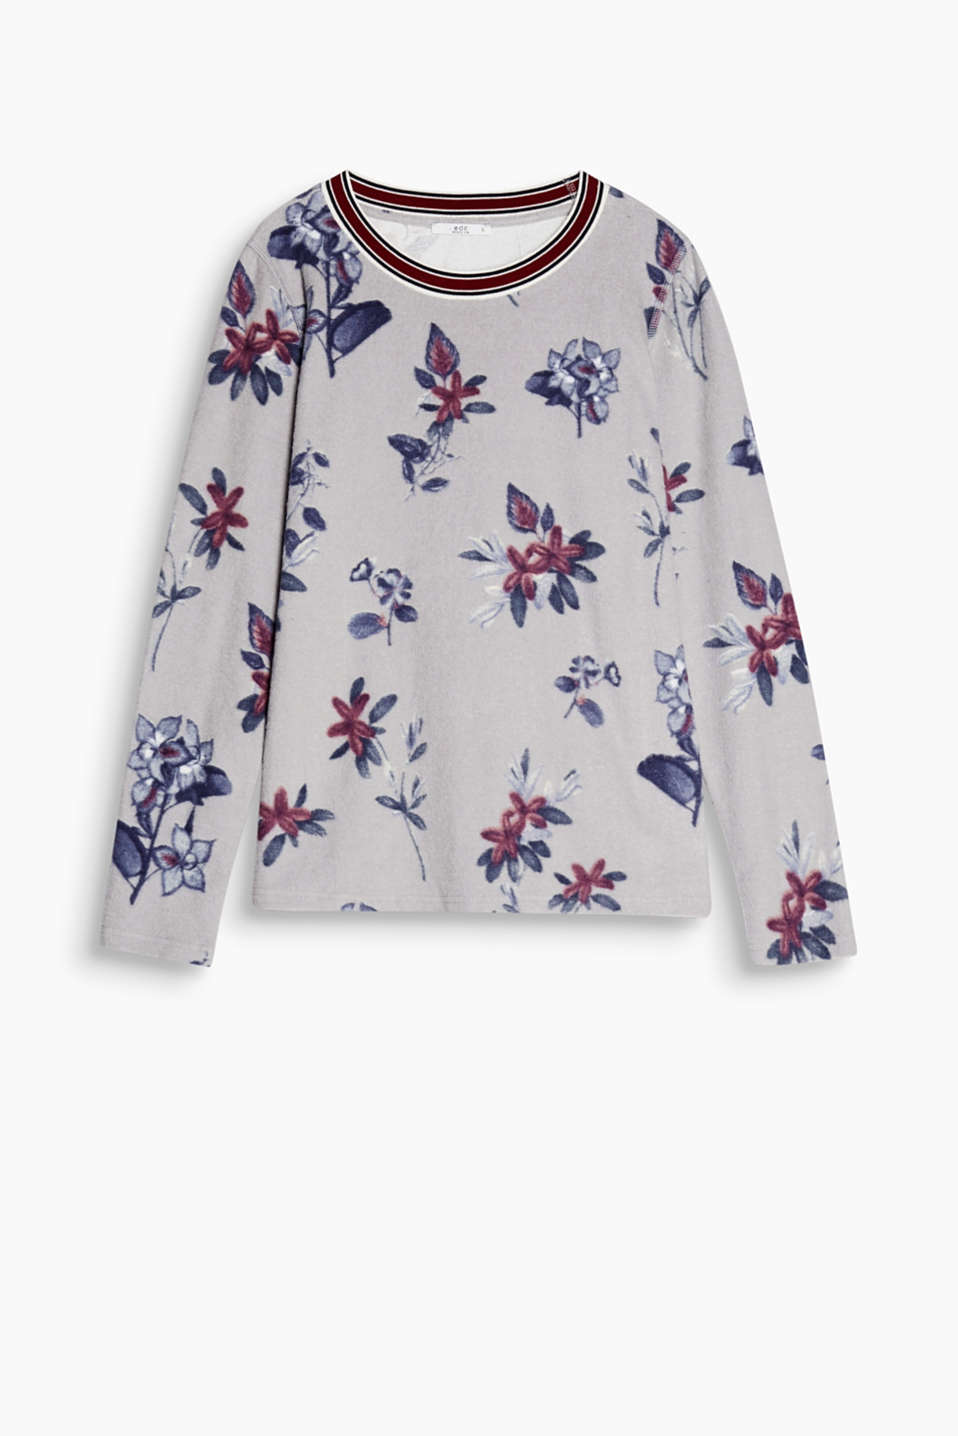 Fleece and flowers - an exciting combination! Cuddly long sleeve top with an all-over print and a sporty neckline